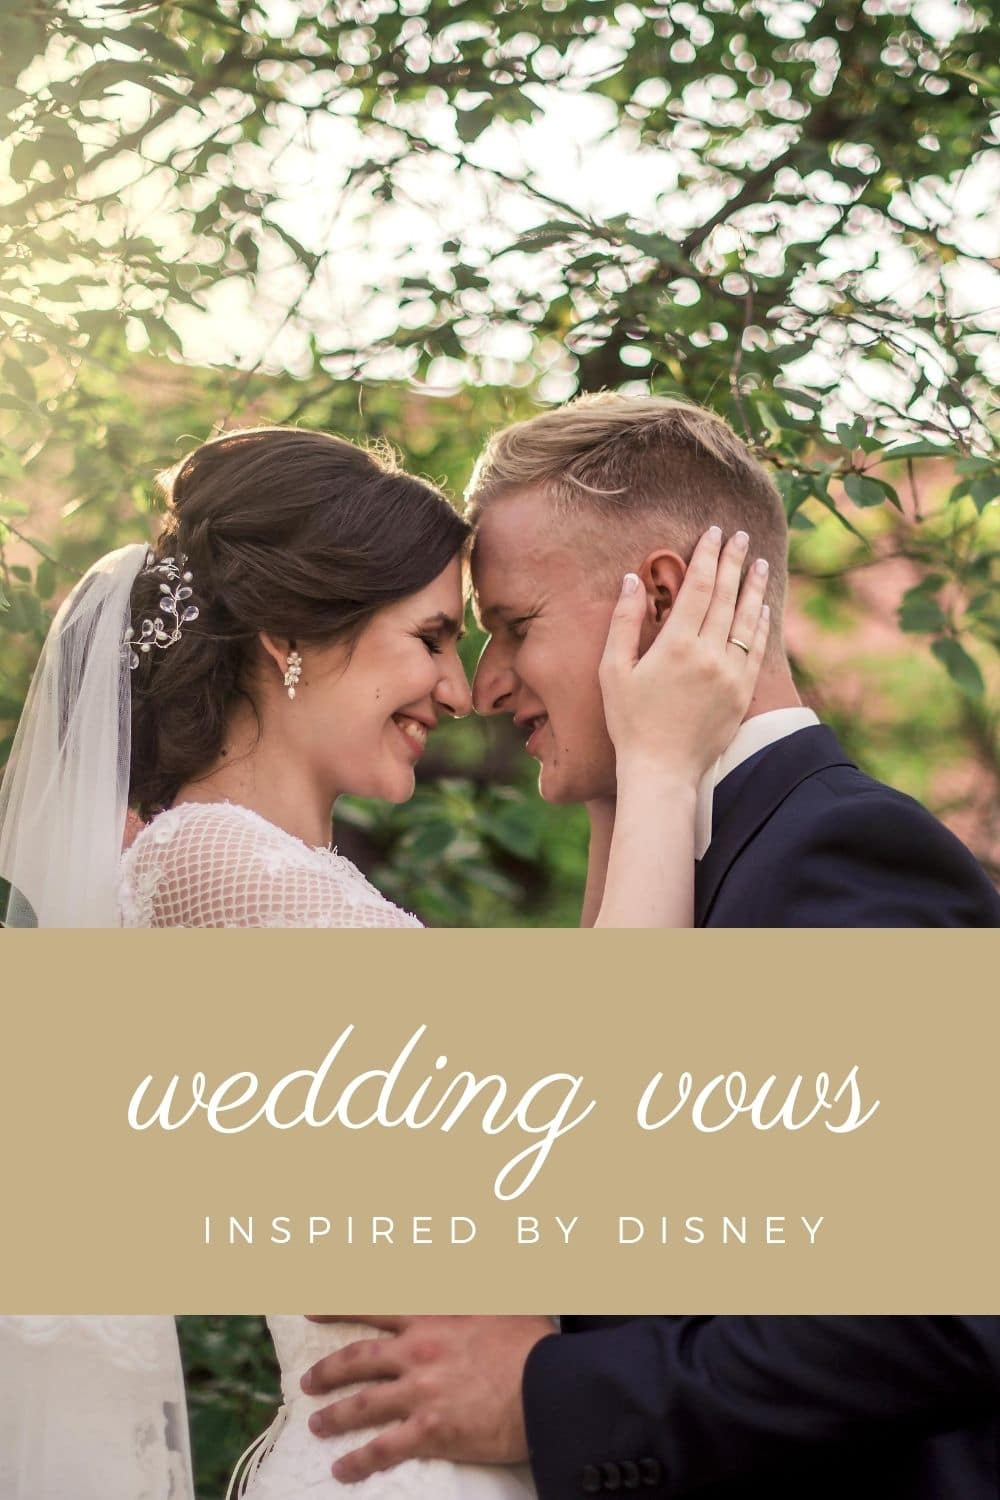 Looking for alternative vows or readings for your wedding? Here's a few with a fun and familiar lean from the wonderful world of Disney.